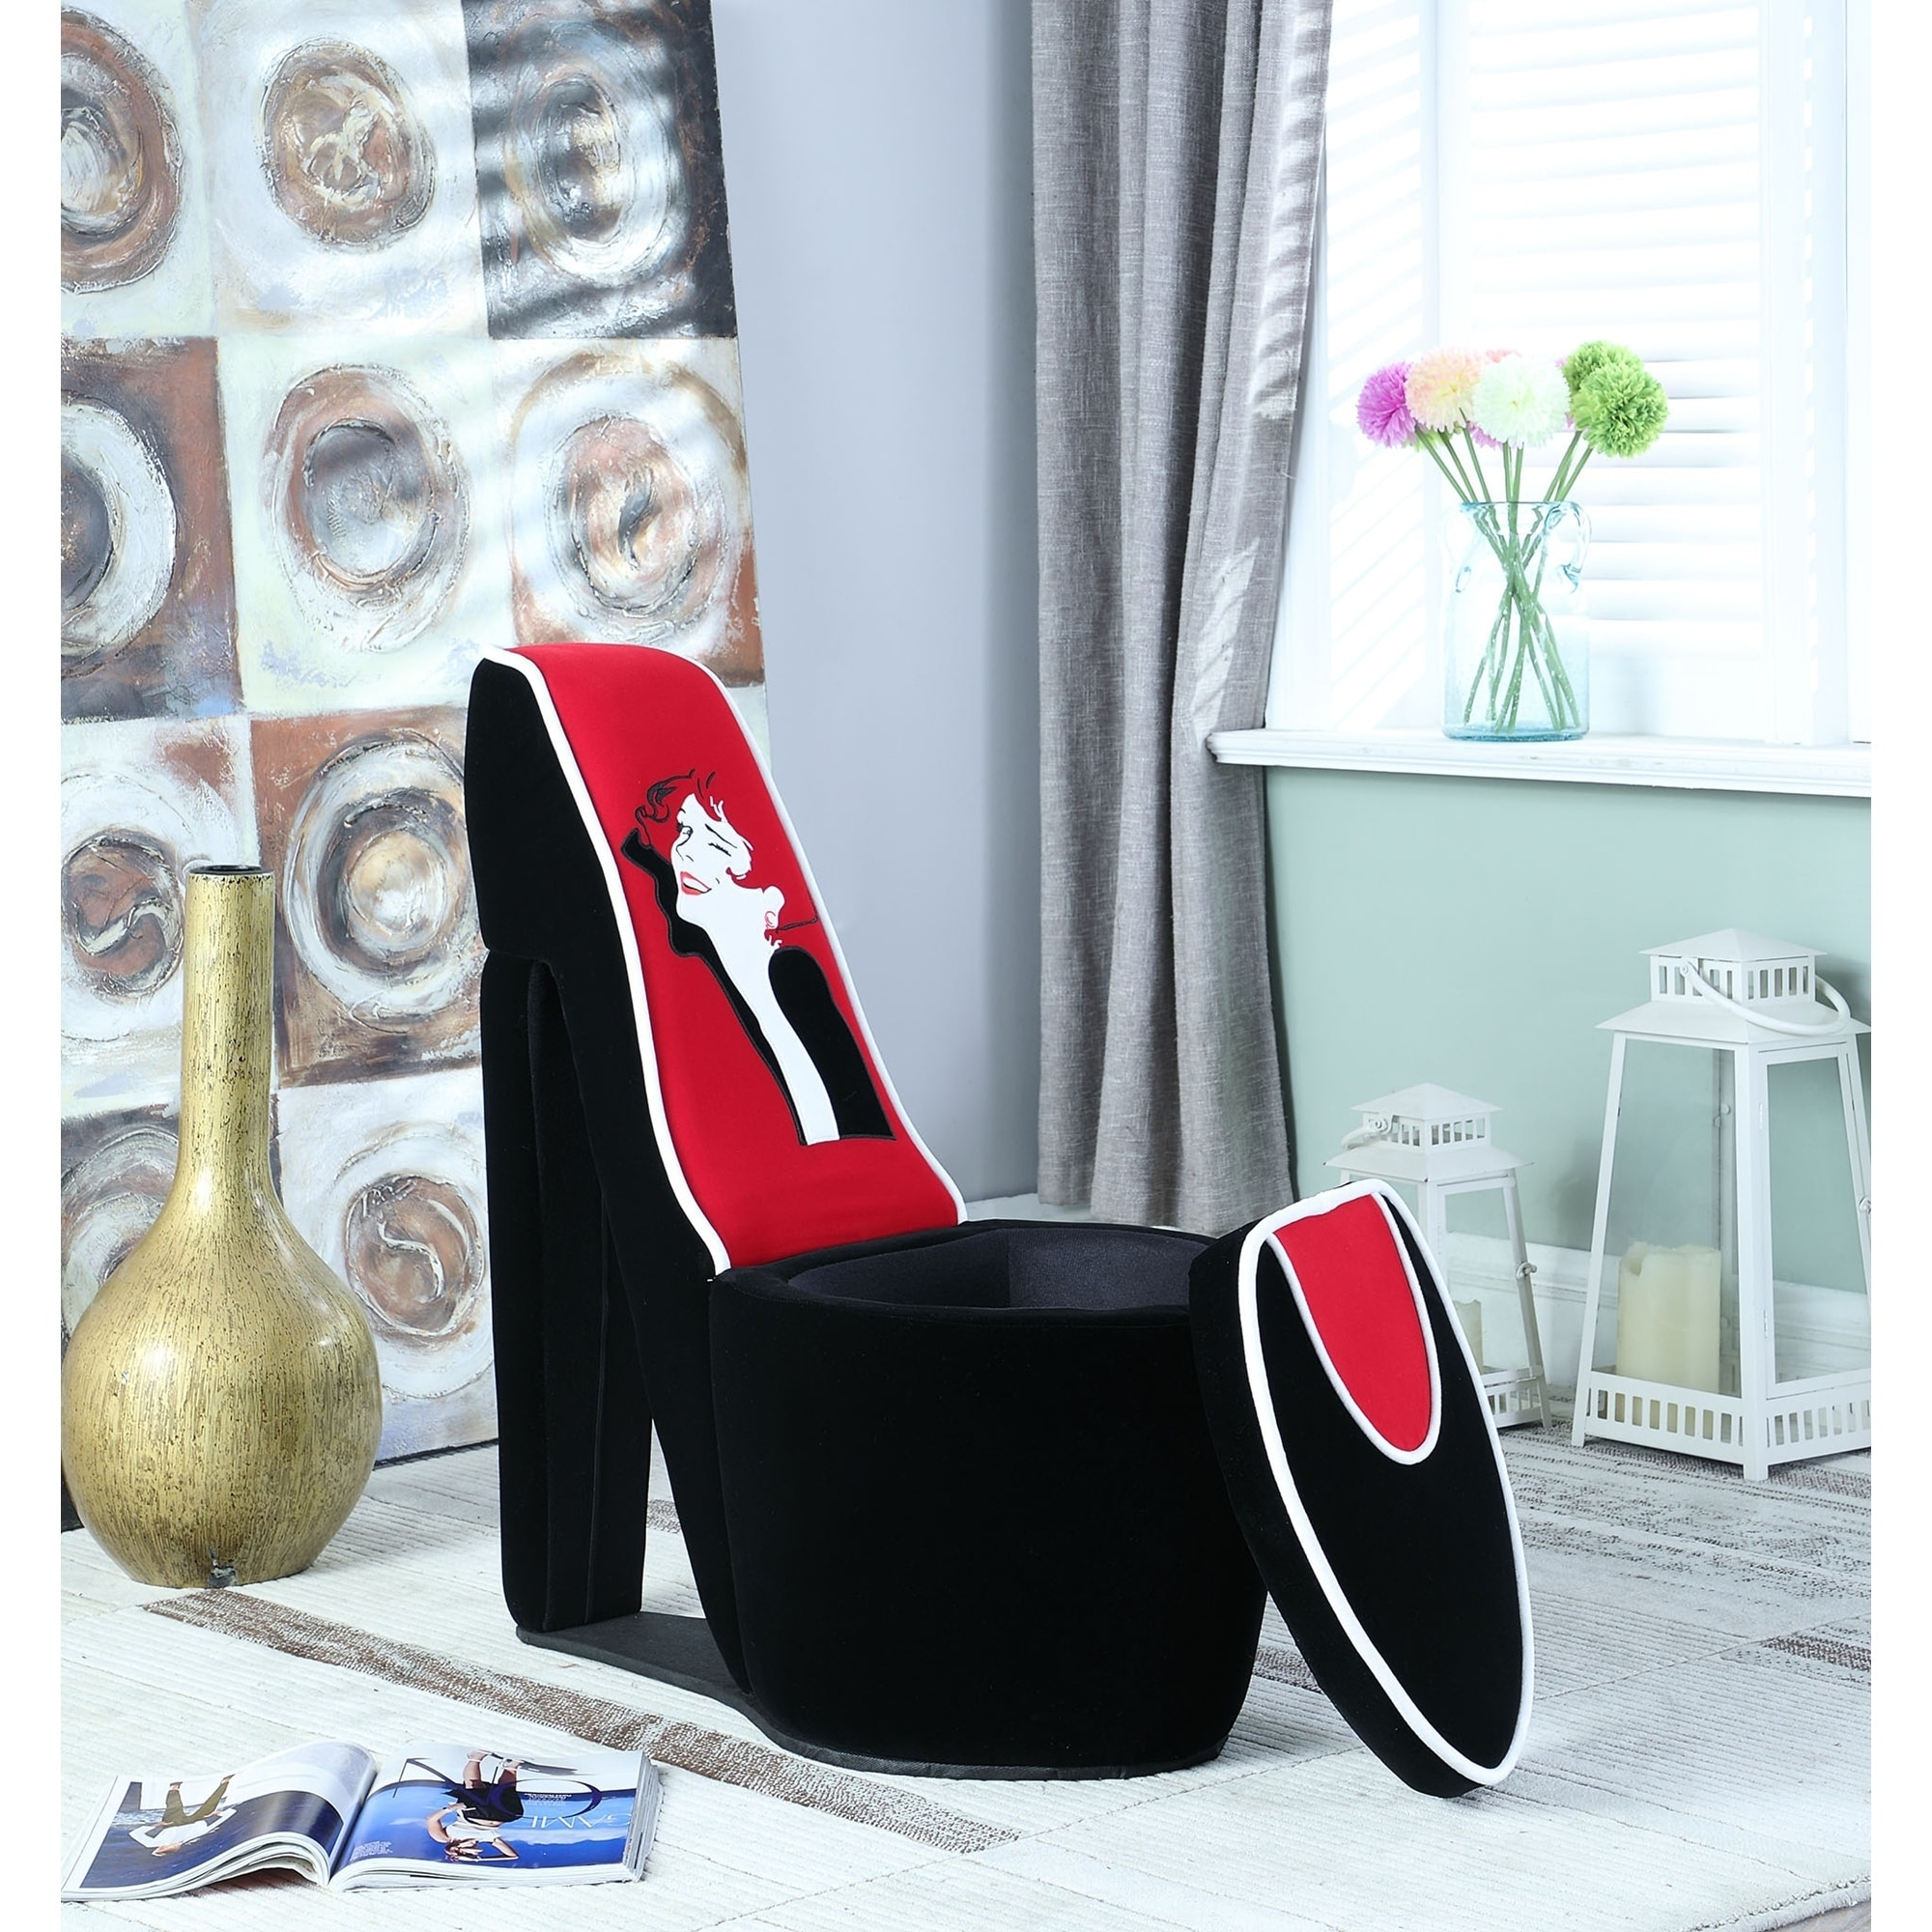 32 86 inch Glamour Girl Modern Living Room High Heel Storage Chair